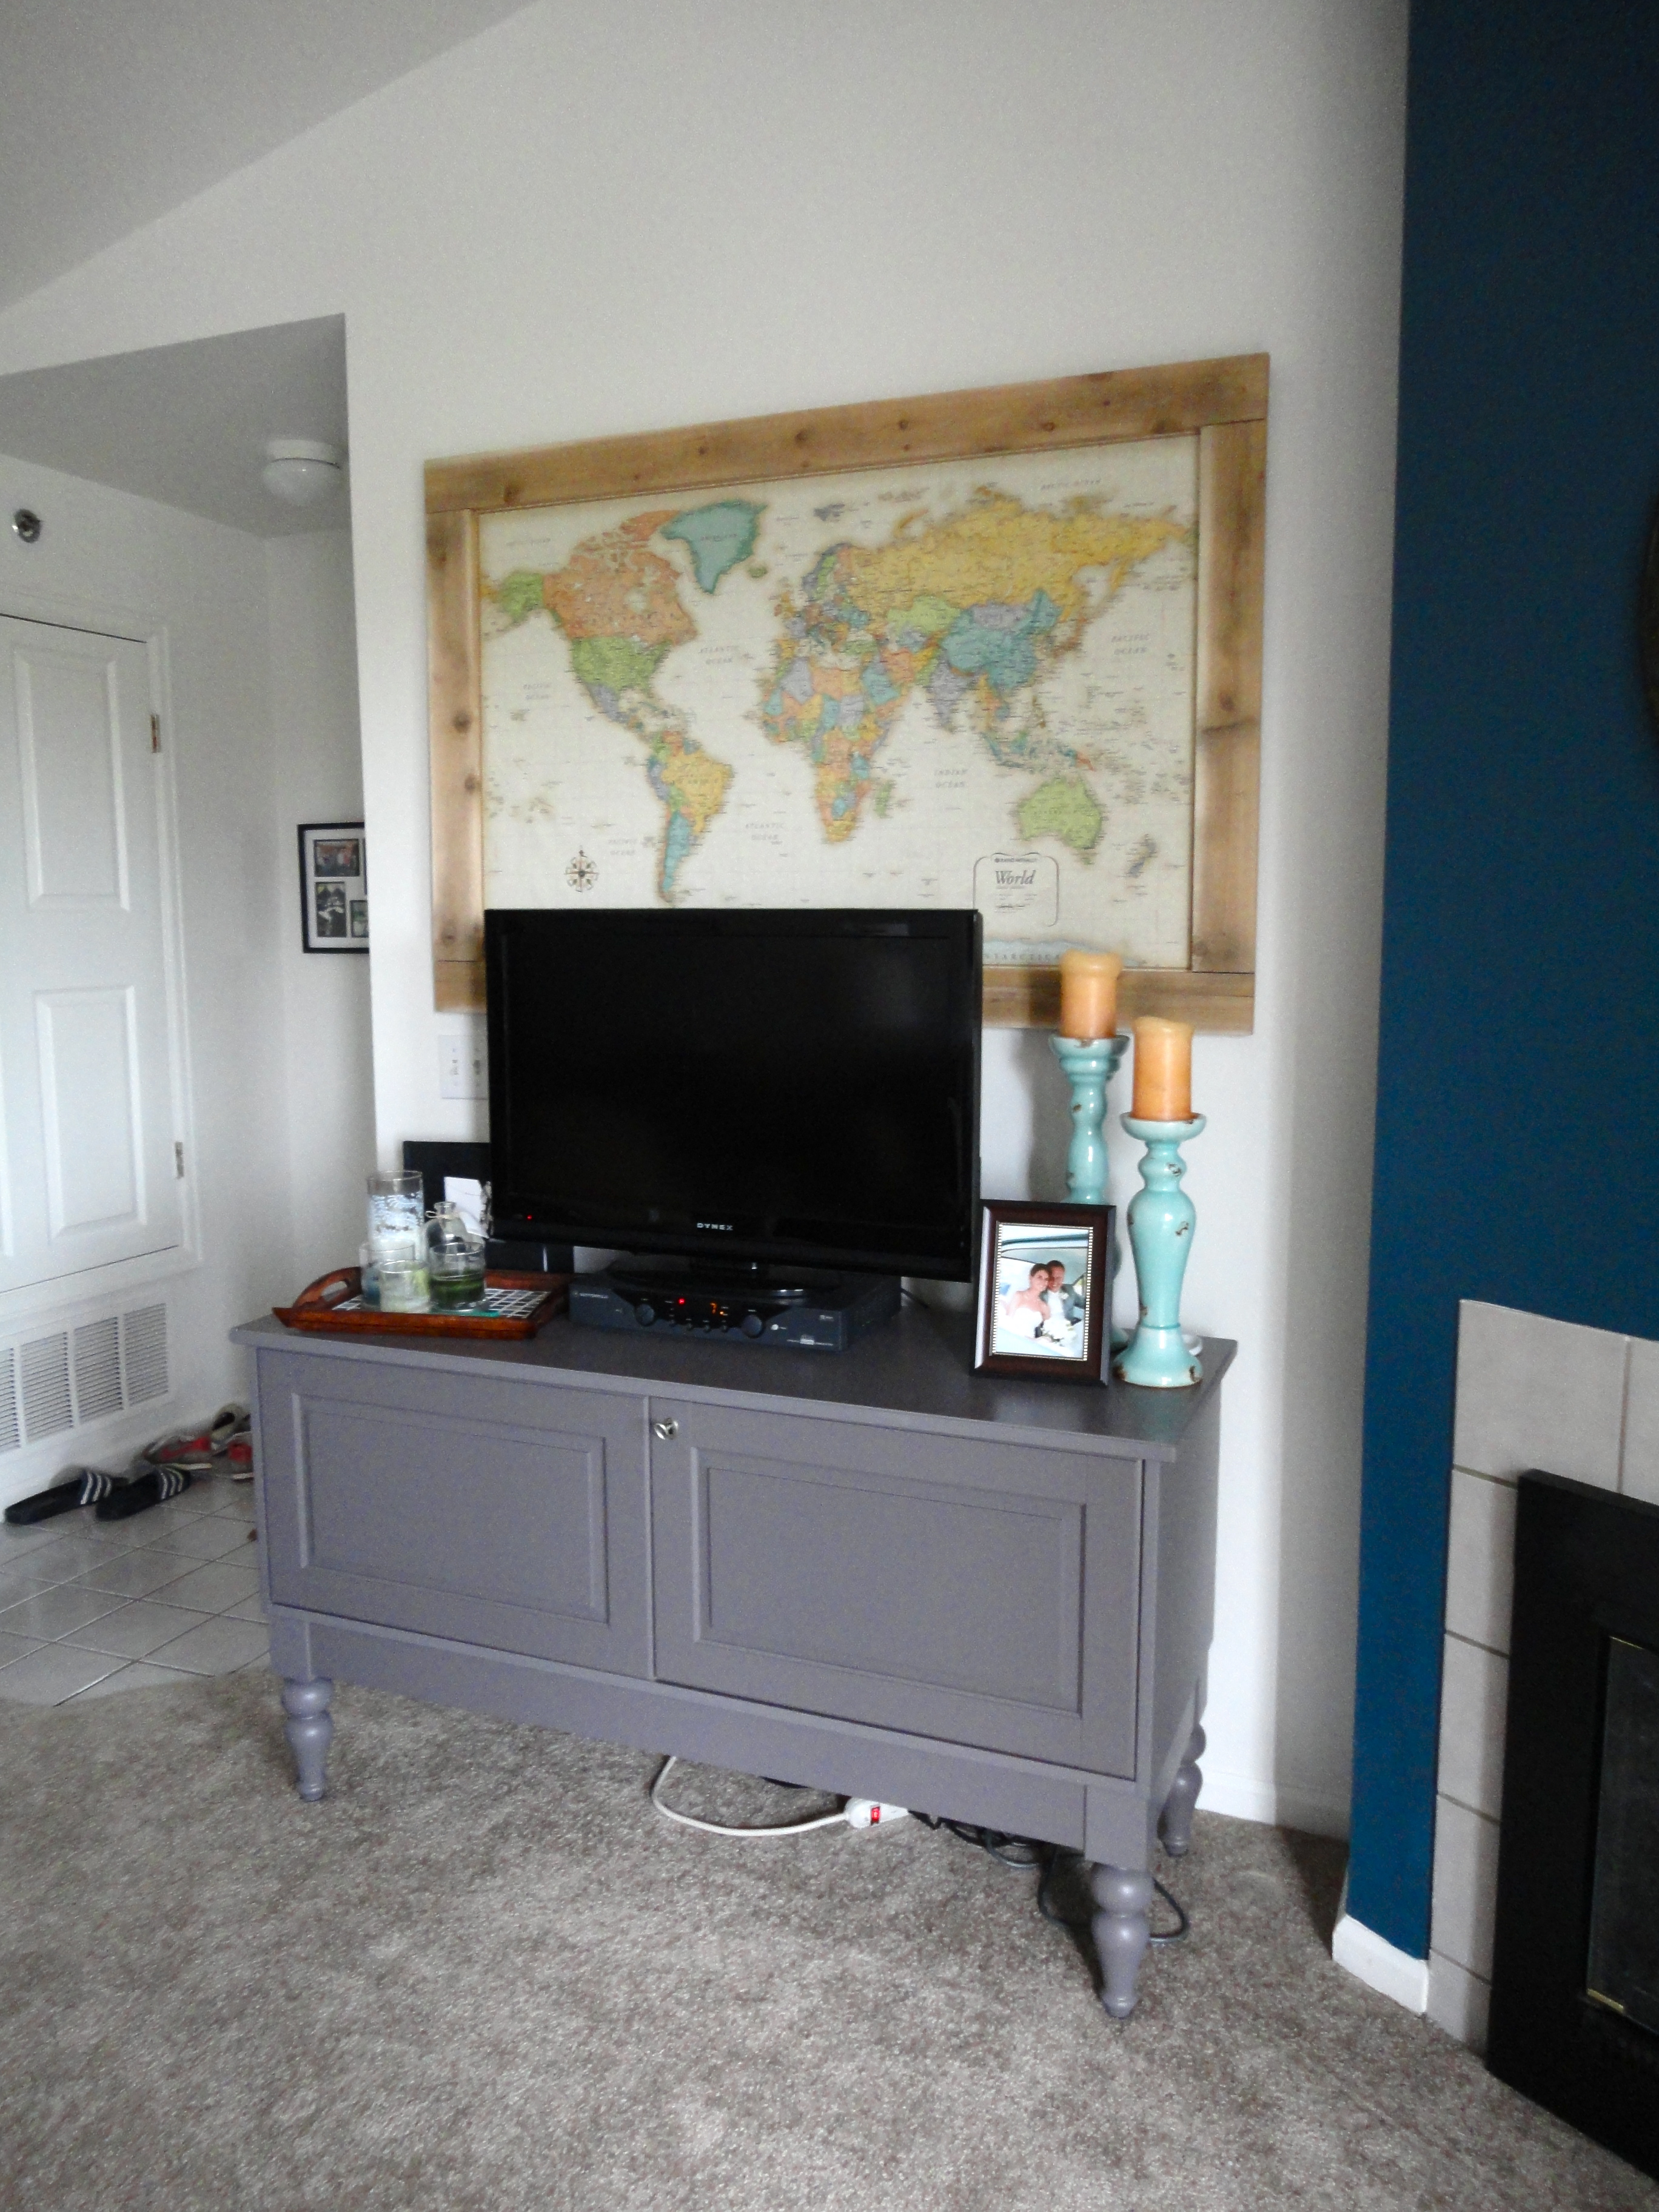 diy large map art above the tv (jennaandcalder)